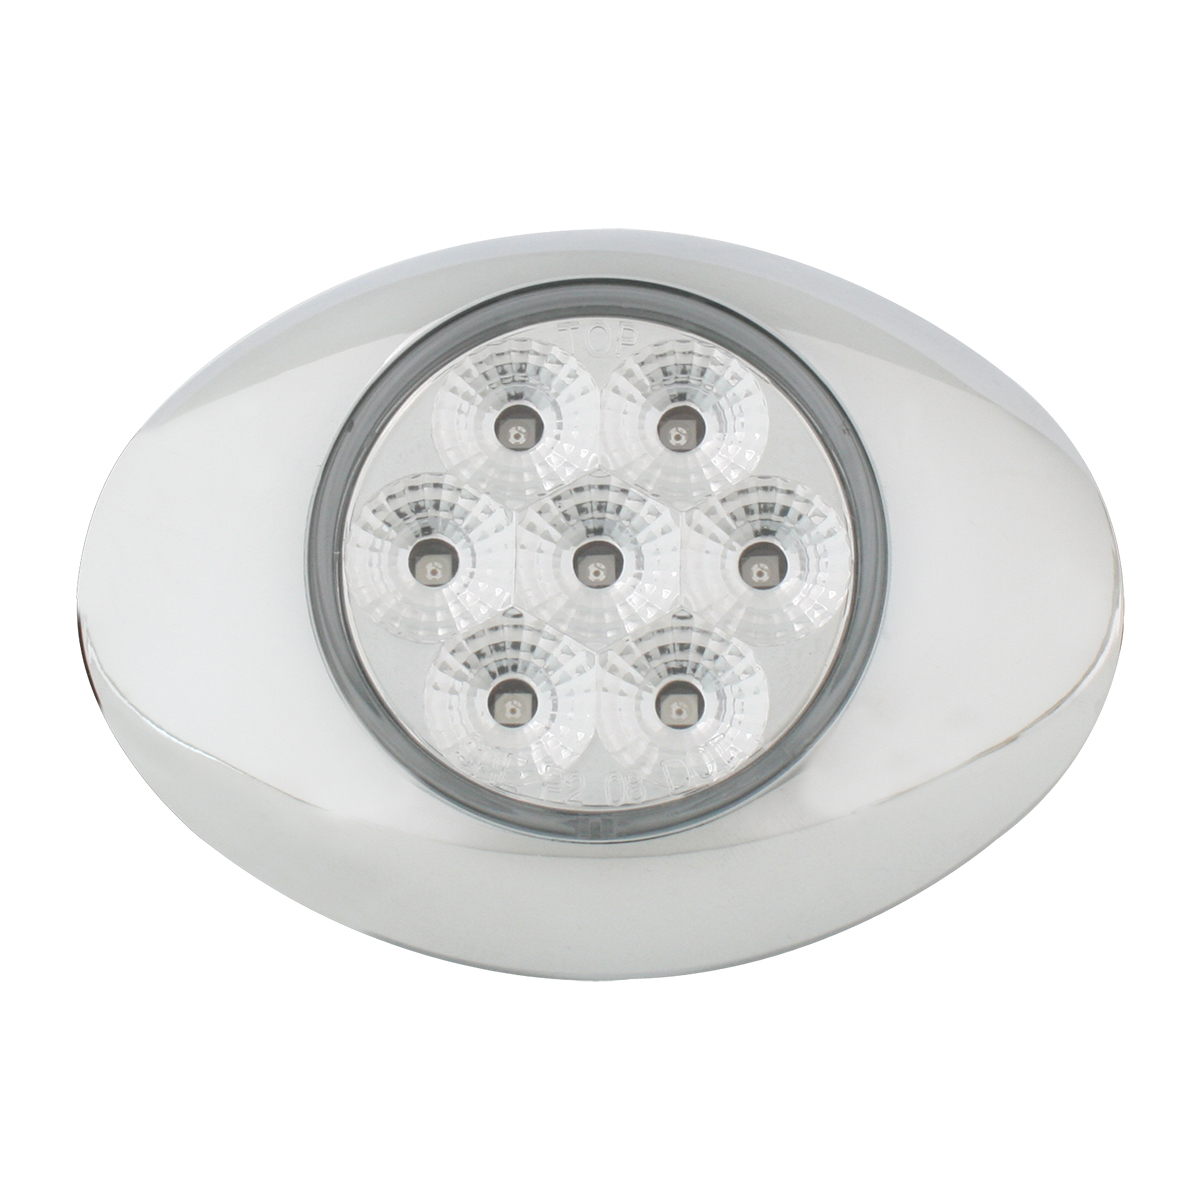 Small Low Profile Surface Mount Spyder LED Marker & Turn Light w/ Chrome Bezel in Clear Lens